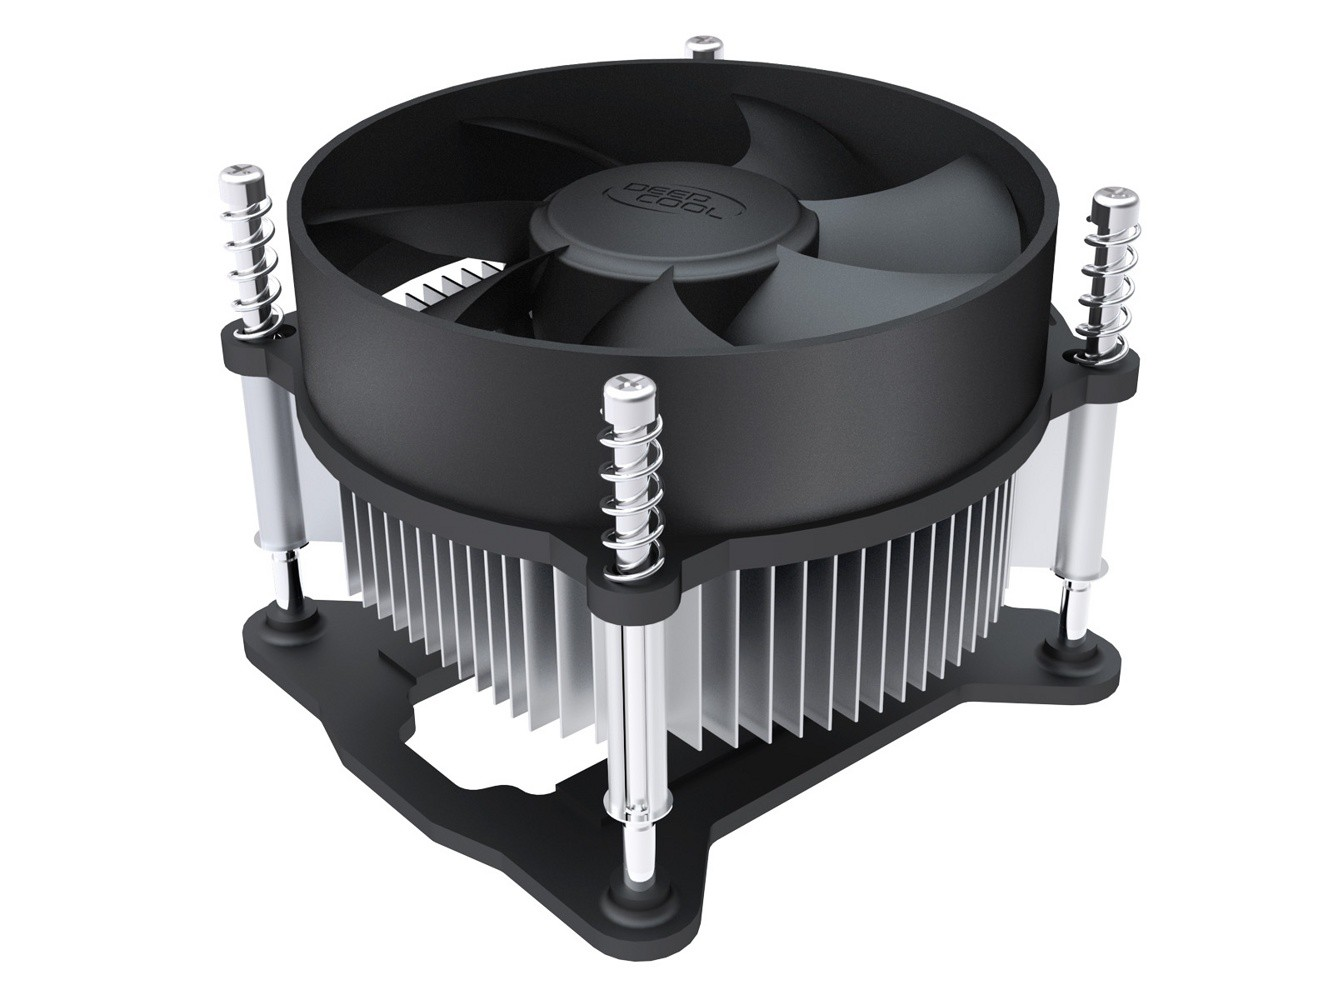 Вентилятор DeepCool CK-11508 (2200rpm, 30.1dB, 42.35 CFM, 3-pin, 65W) (Socket 1155/1150/1151)